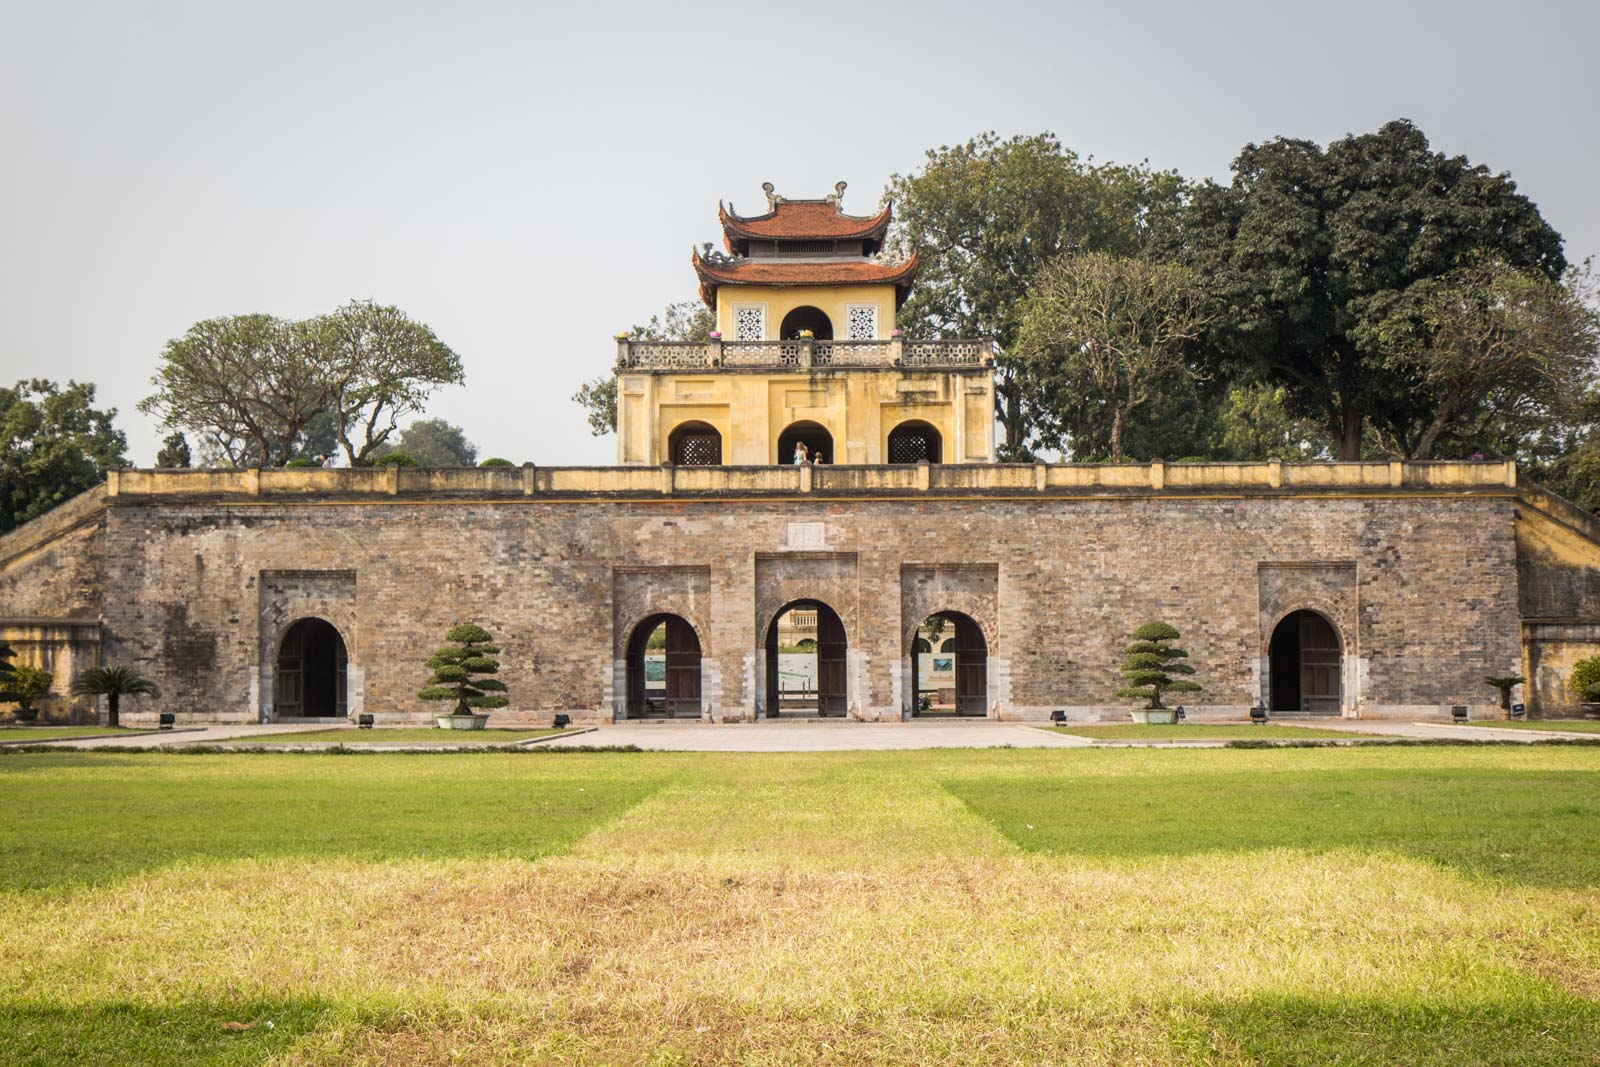 Thang Long Imperial Citadel